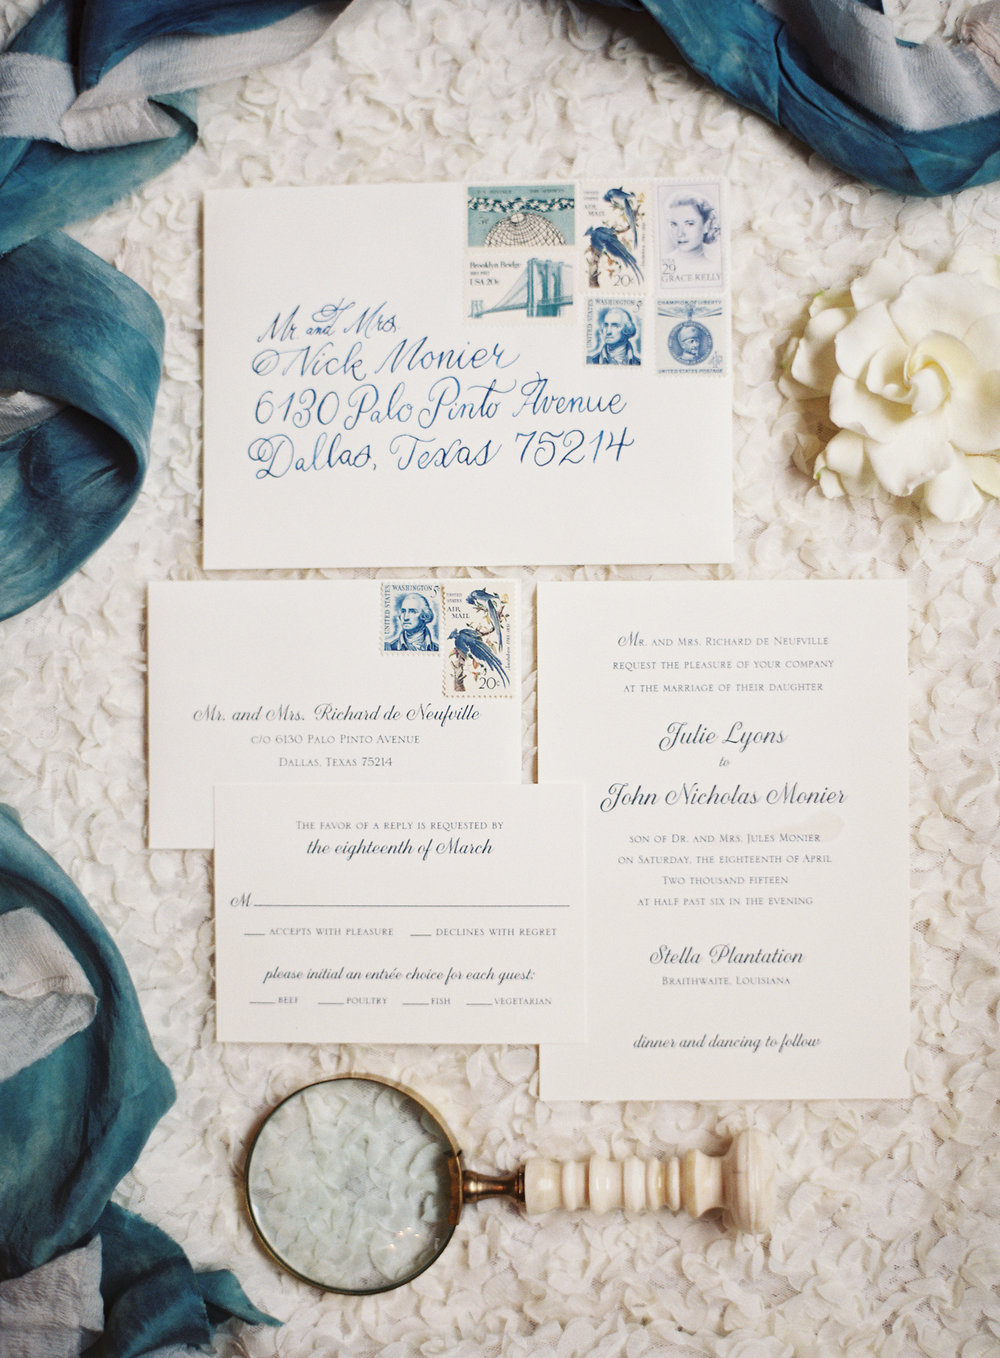 Sapphire Events | Catherine Guidry Photography | Wedding Planning | New Orleans Wedding | Stella Plantation Wedding | Blue and White Wedding | Classic Rainy Day Wedding | Outdoor Wedding | Tent Wedding | Hunter Boots | Blue and White Wedding Details | Blue and White Stationery | Blue Calligraphy | Vintage Stamps